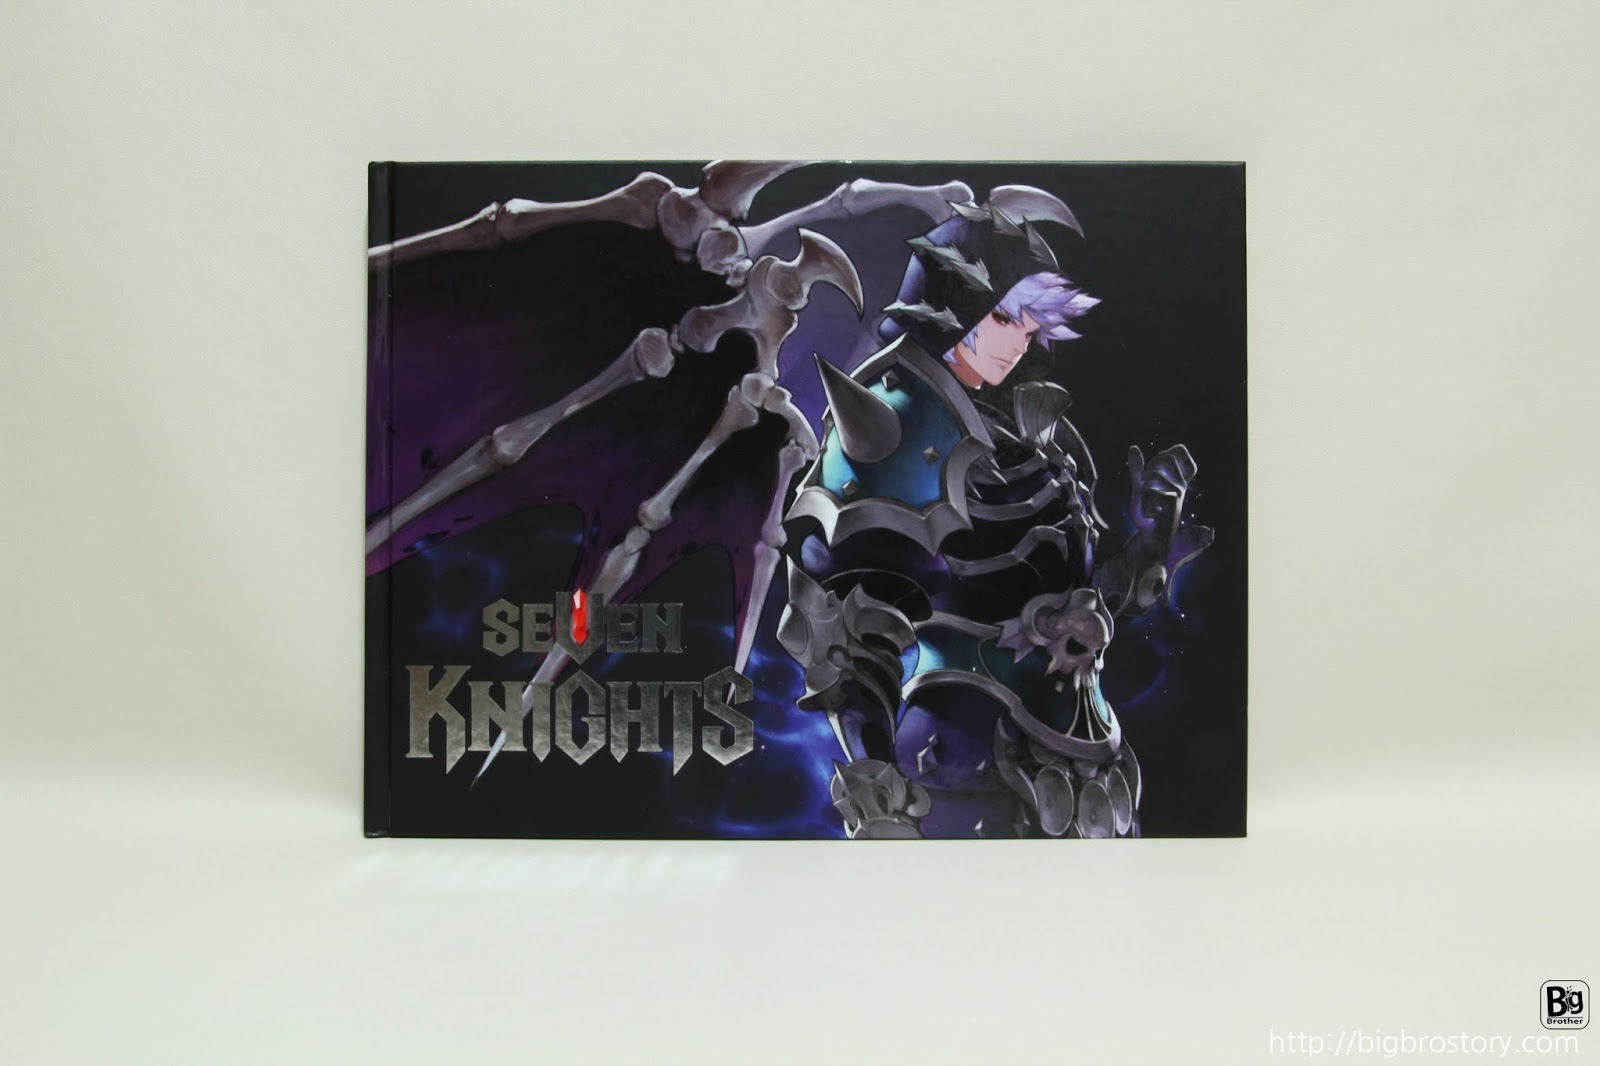 The Review of The Art of Seven Knights - Big Brother Story